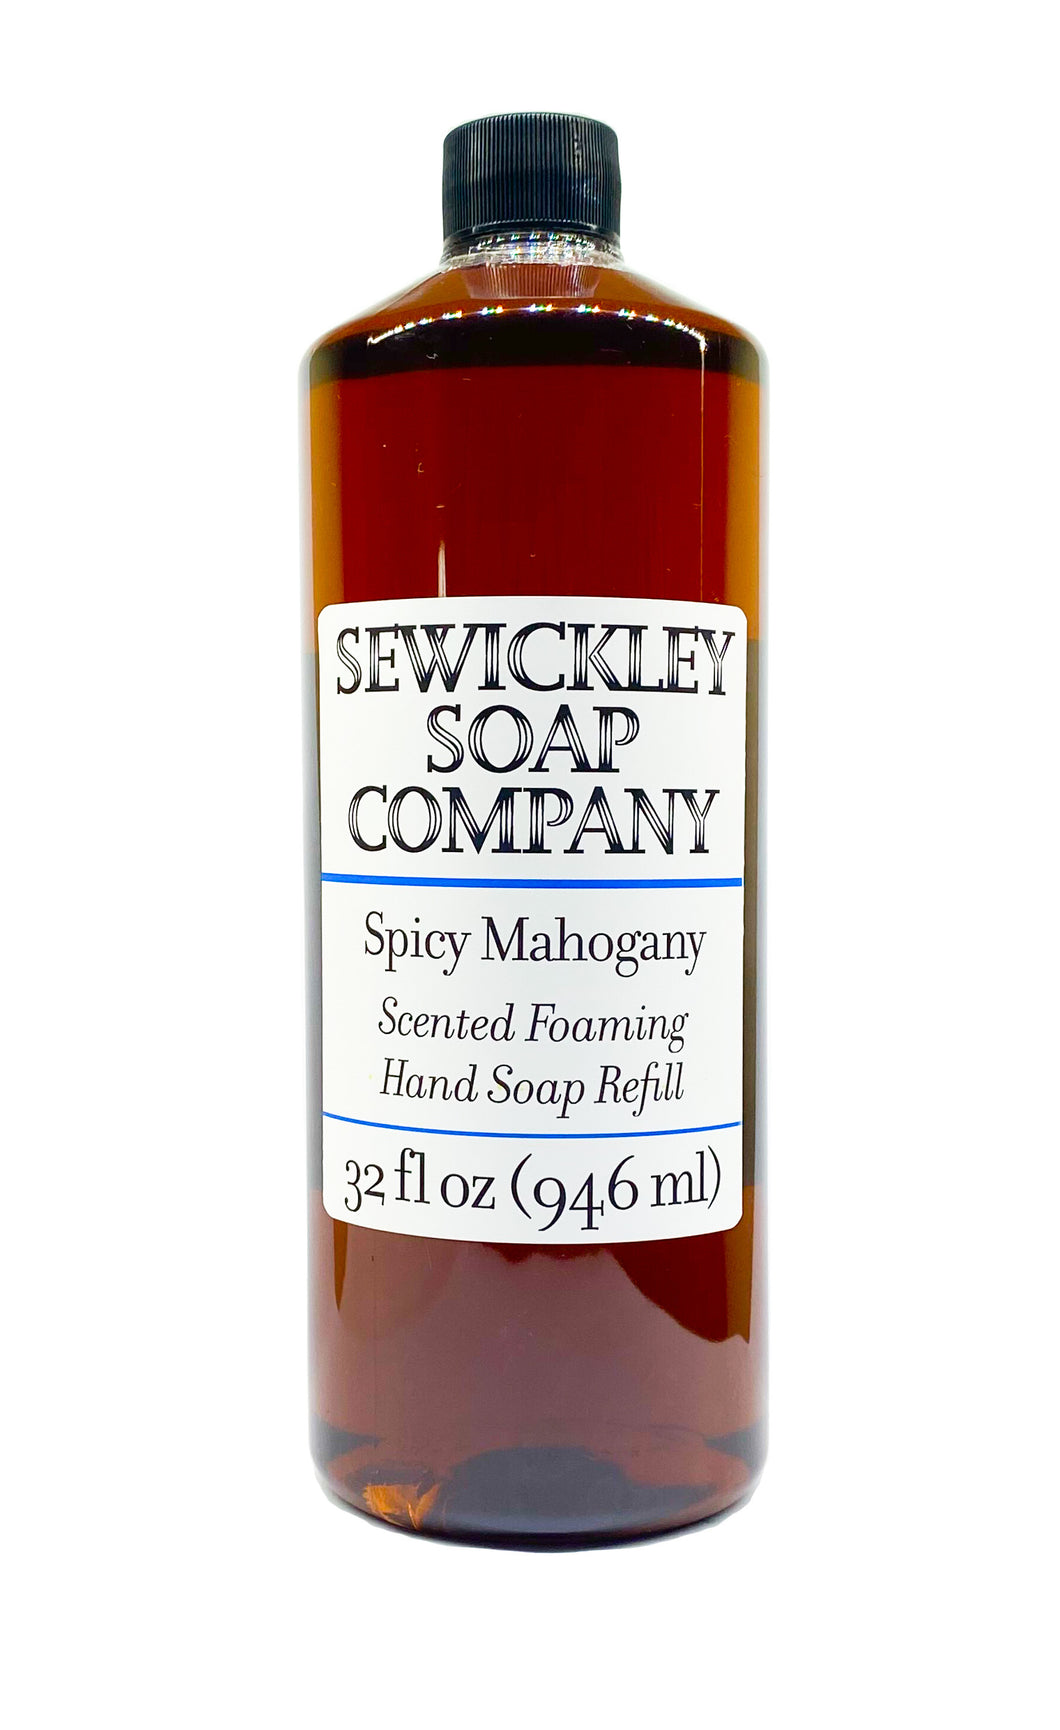 Spicy Mahogany Scented Foaming Hand Soap - 32oz Refill